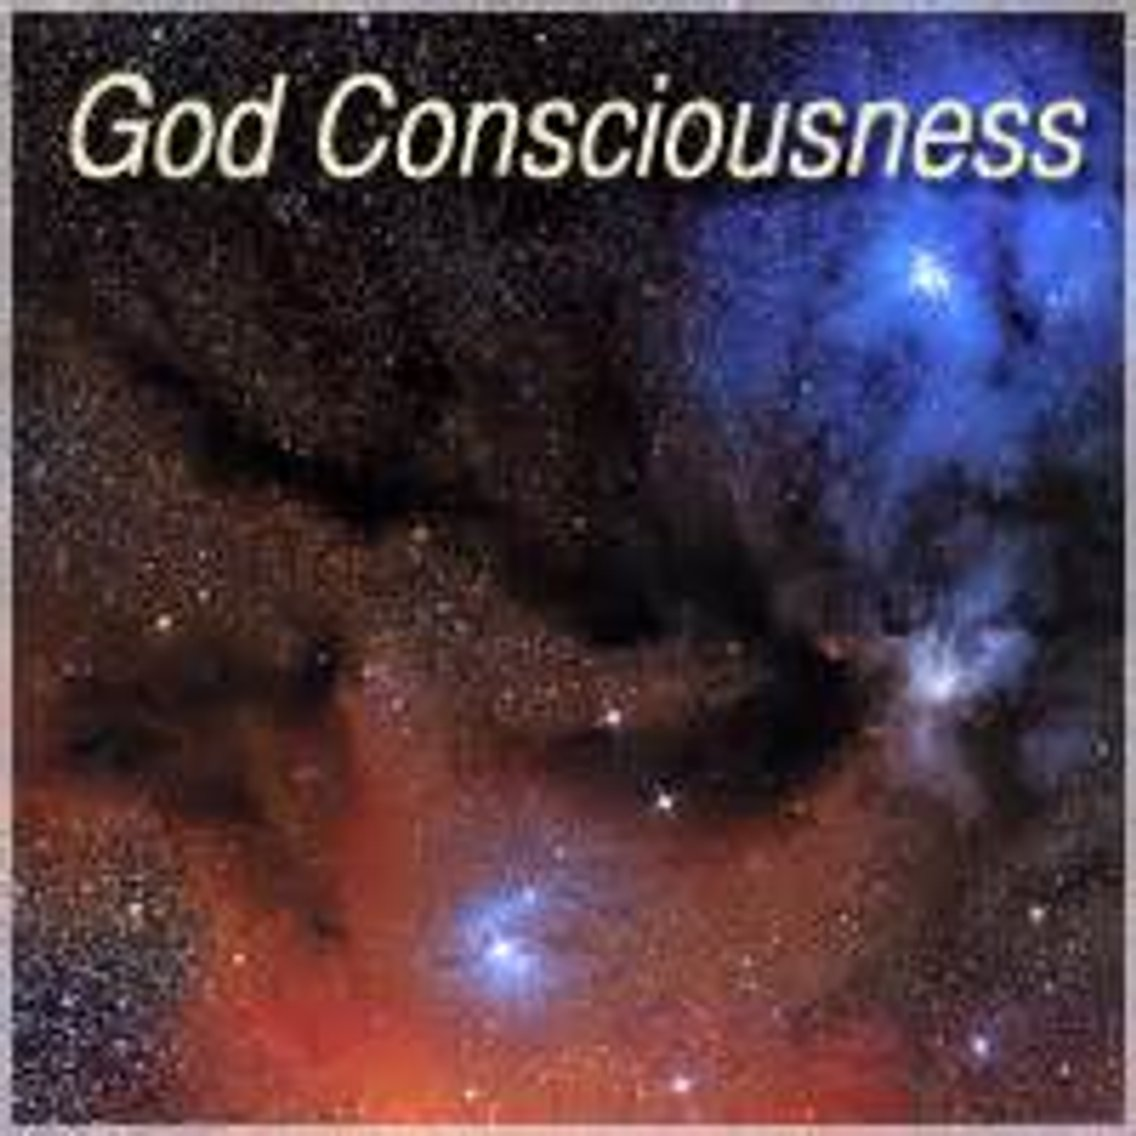 Consciously Interacting With God #2 - Cover Image